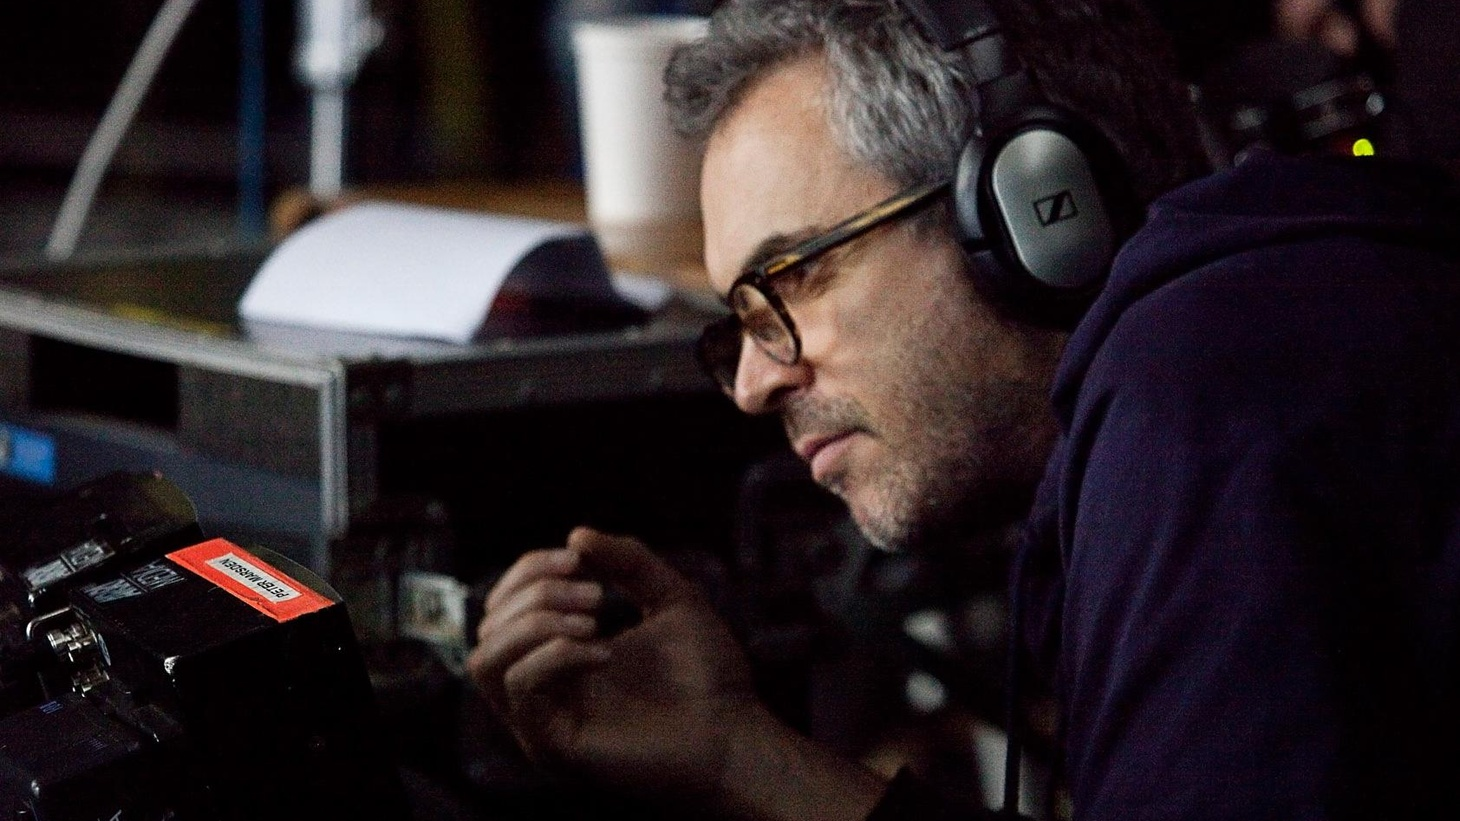 """Alfonso Cuarón on casting an actress over 40 in """"Gravity"""" and re-discovering his love of cinema."""